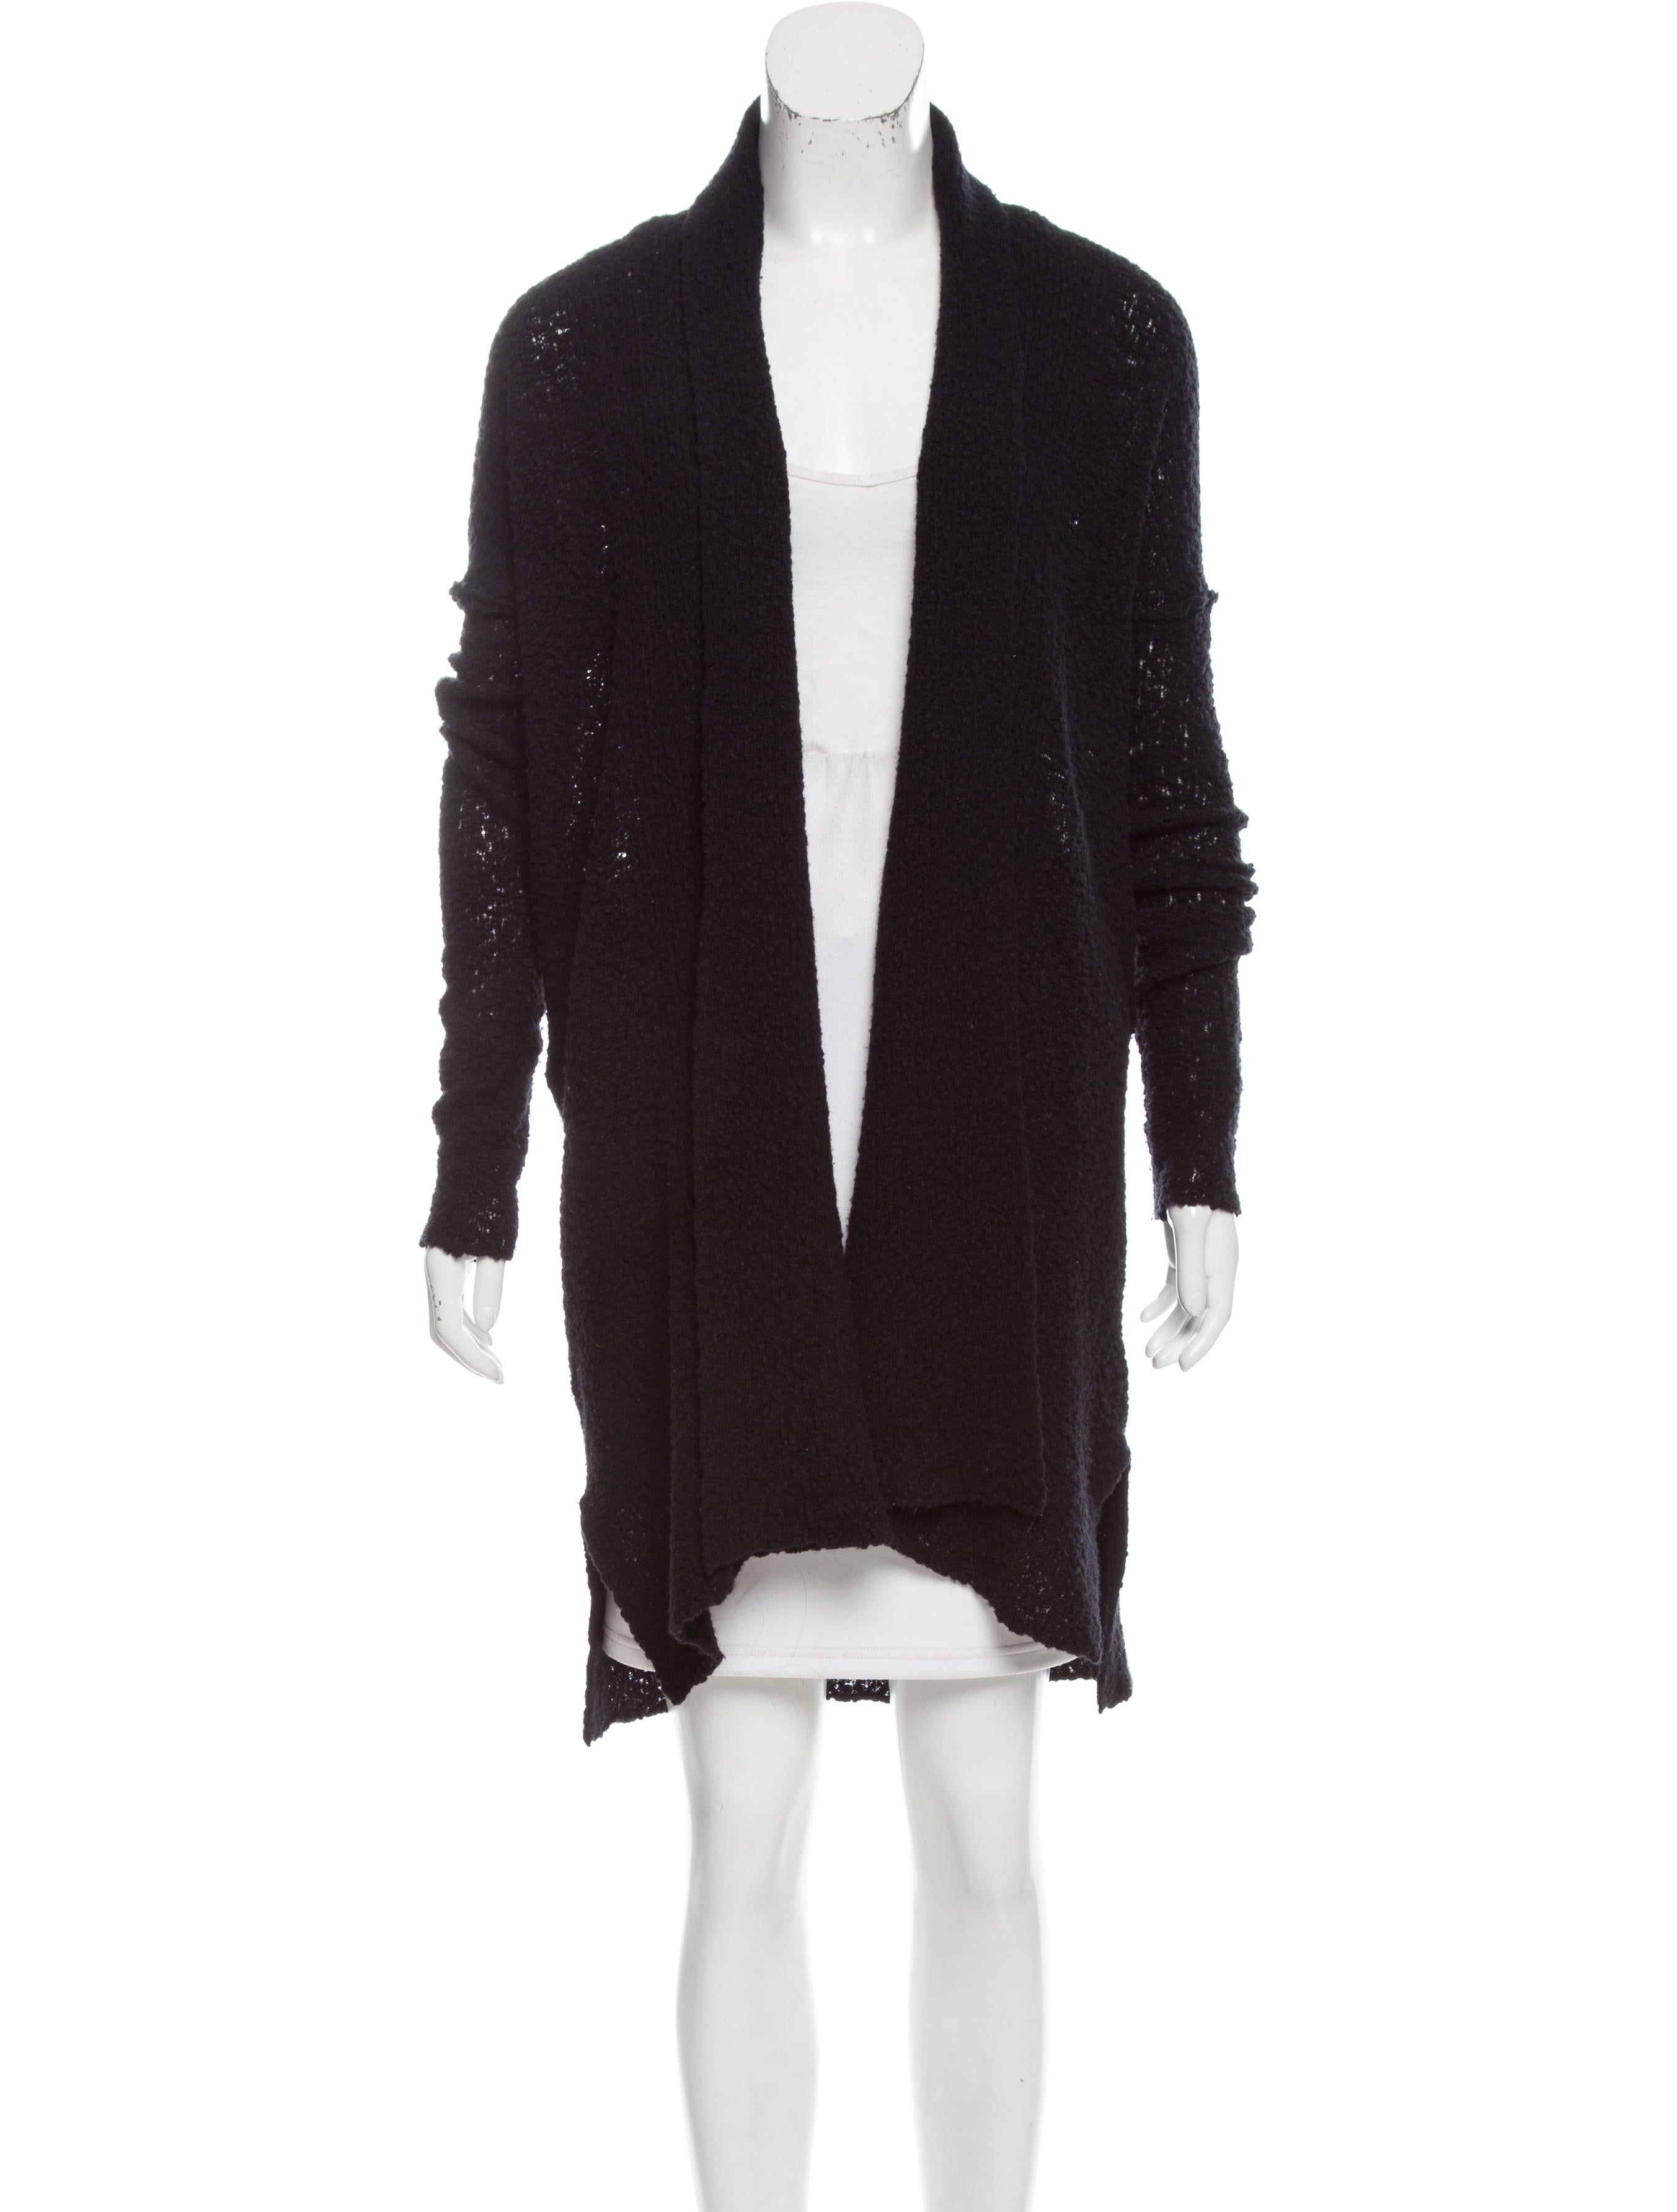 James Perse Wool Duster Cardigan - Clothing - WJP20328 | The RealReal